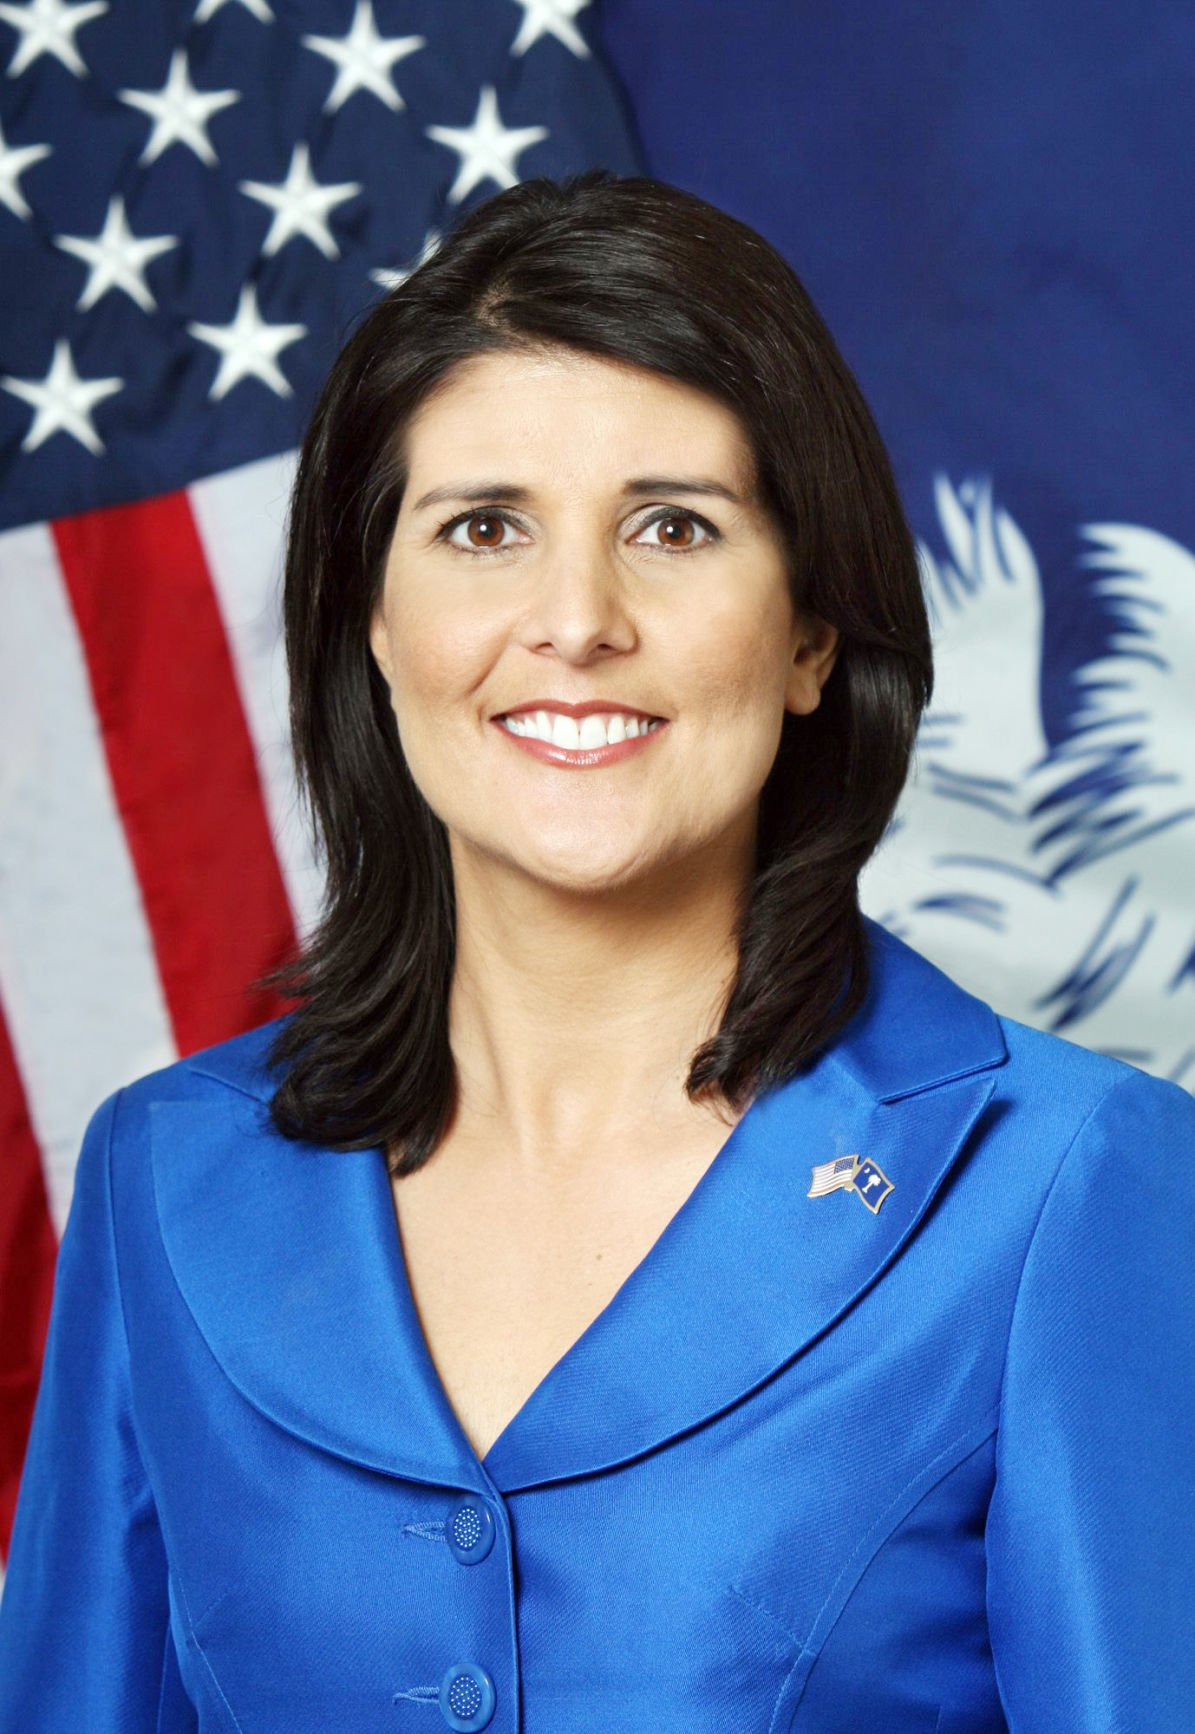 Gov. Nikki Haley one of Working Mother magazine's 50 Most Powerful Moms